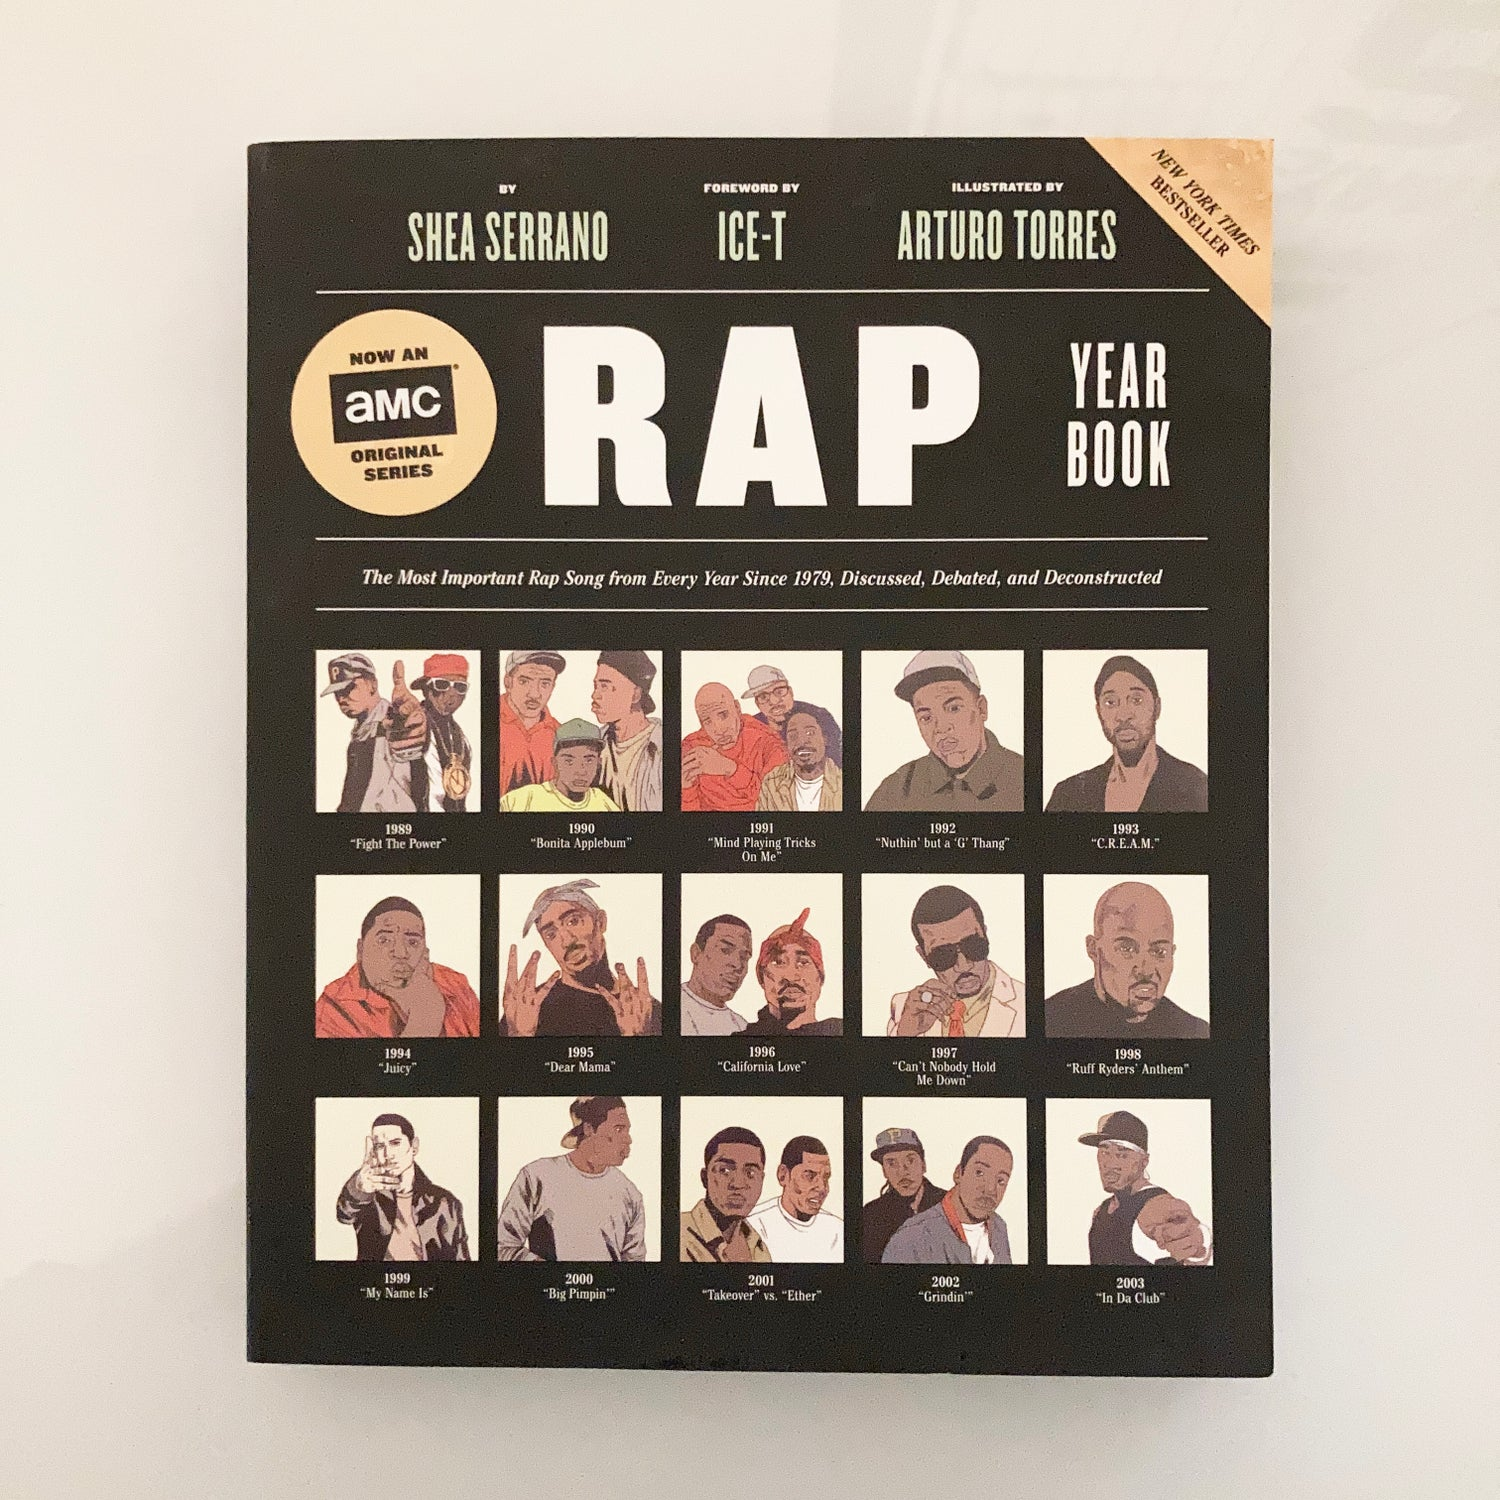 Image of The Rap Year Book: The Most Important Rap Song From Every Year Since 1979